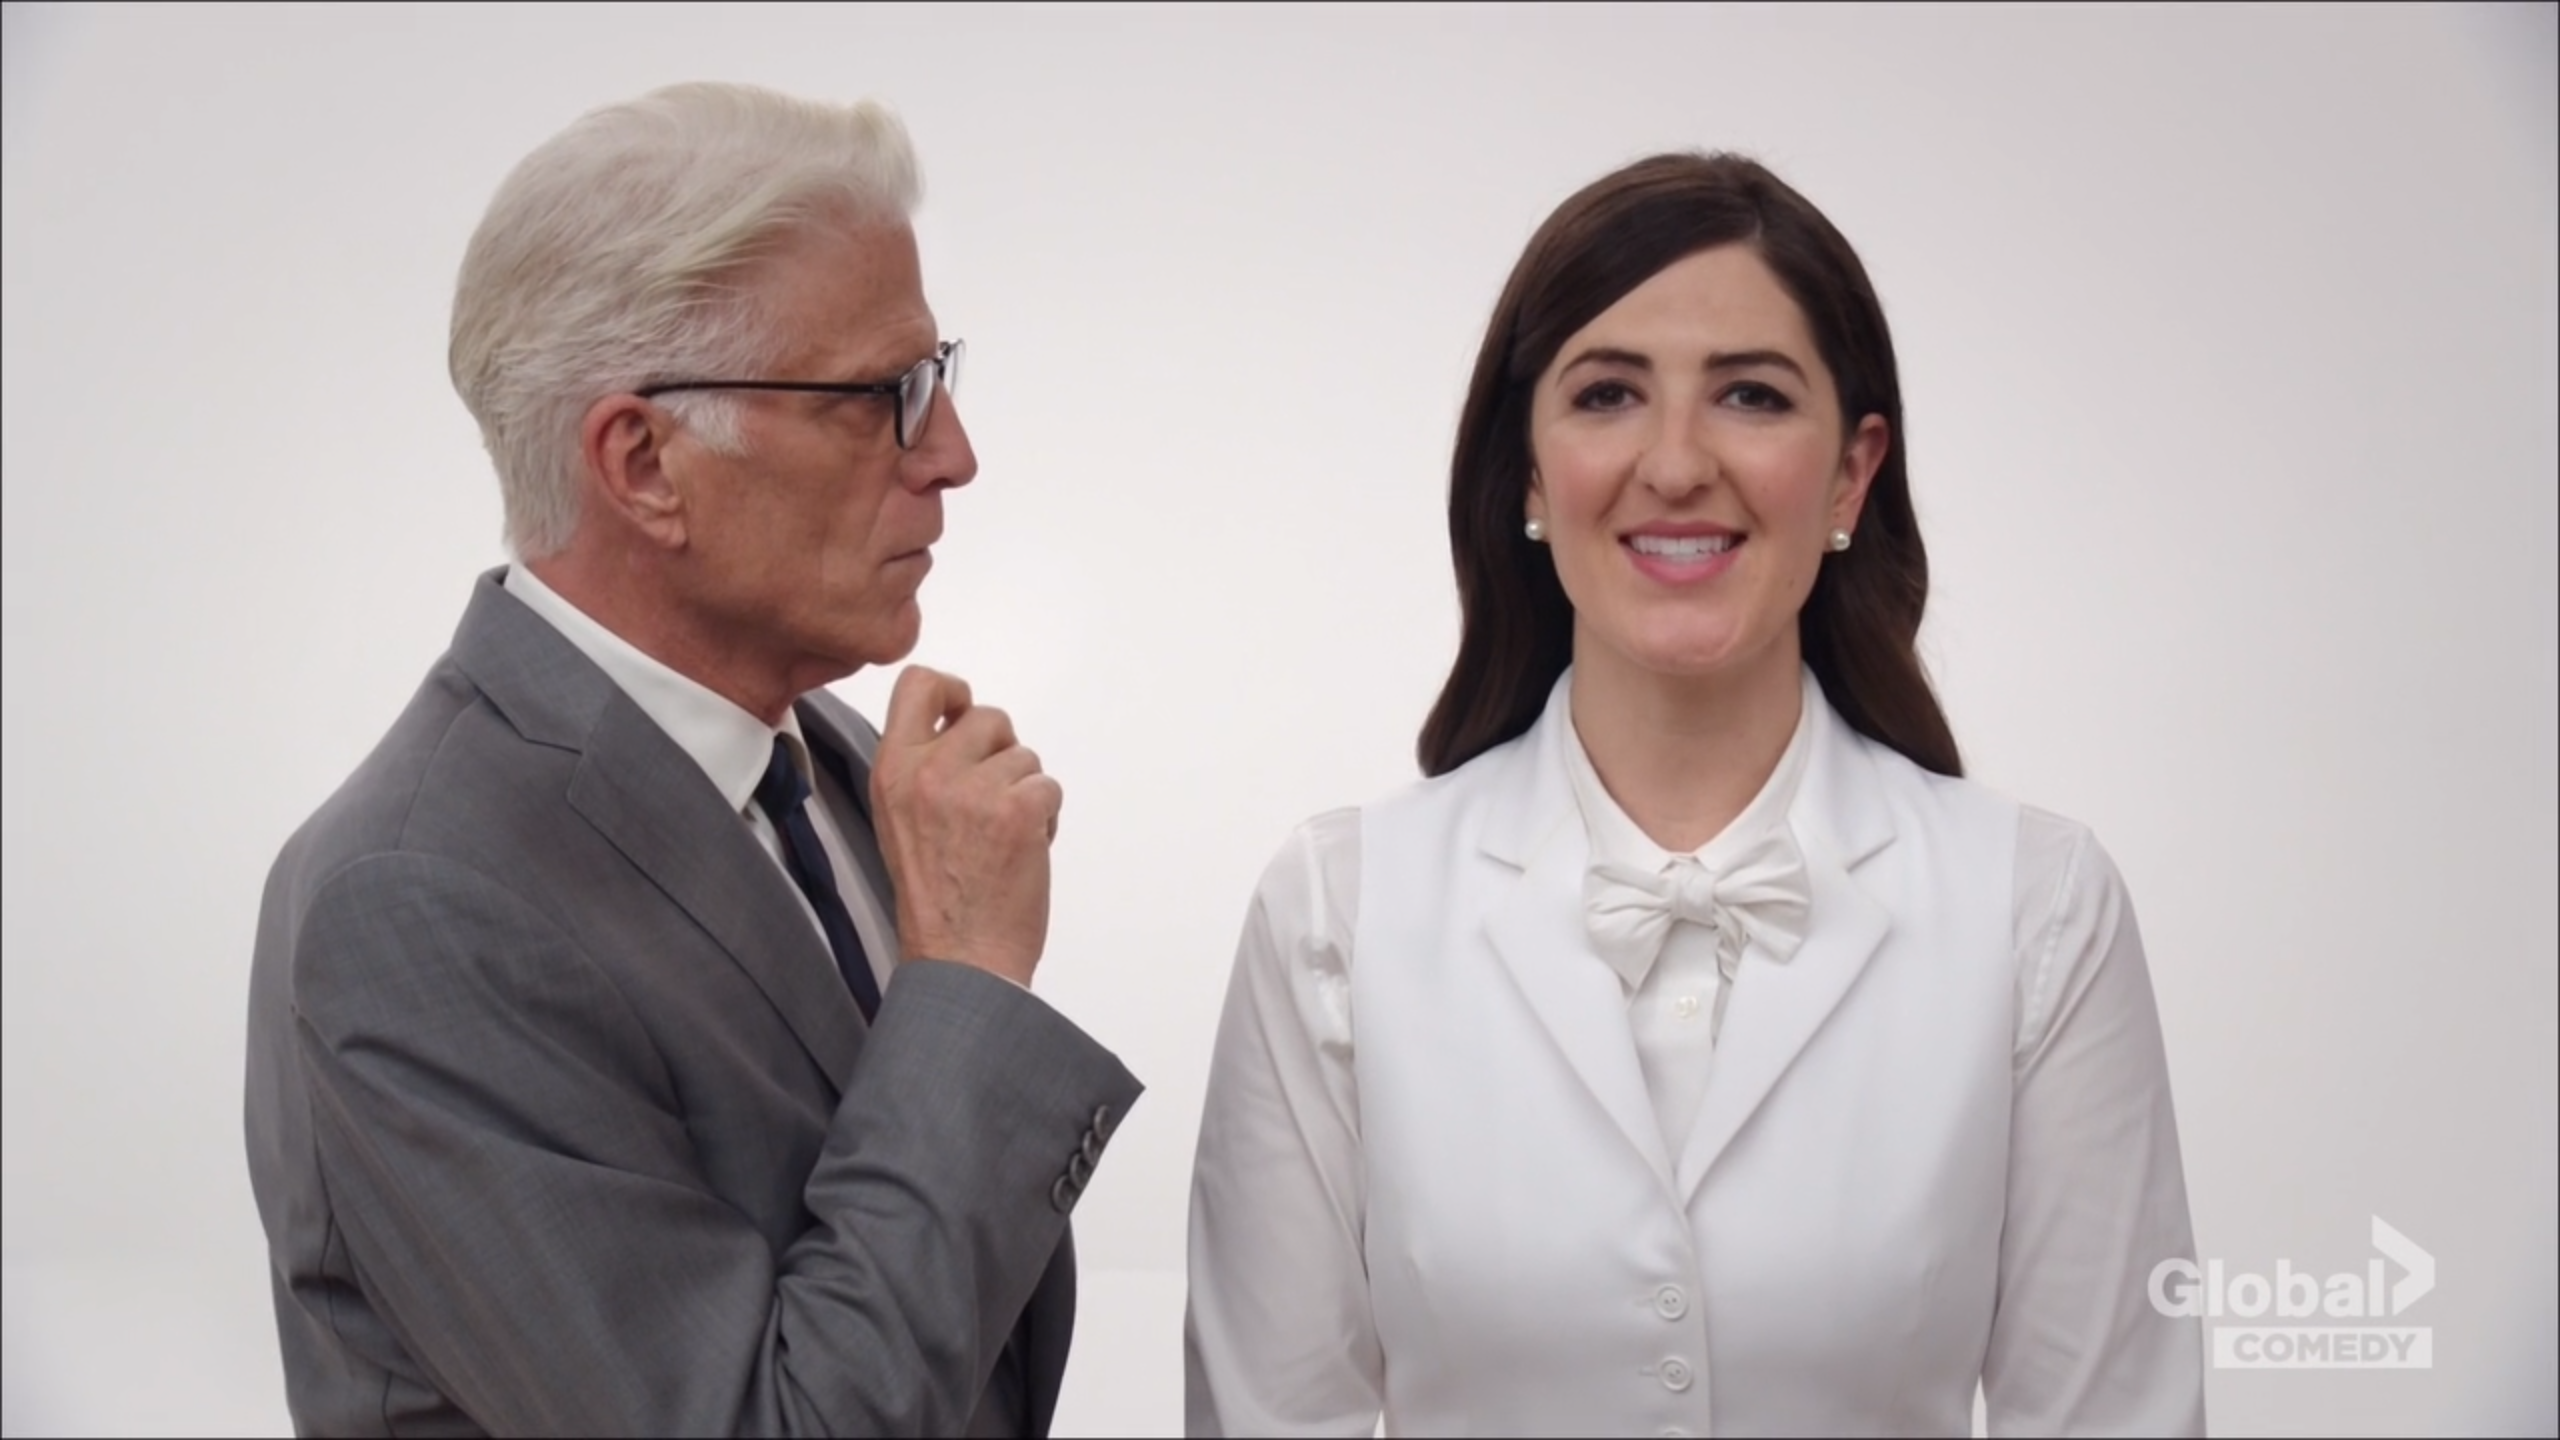 Reviewing Every Episode of The Good Place S2 - Deany